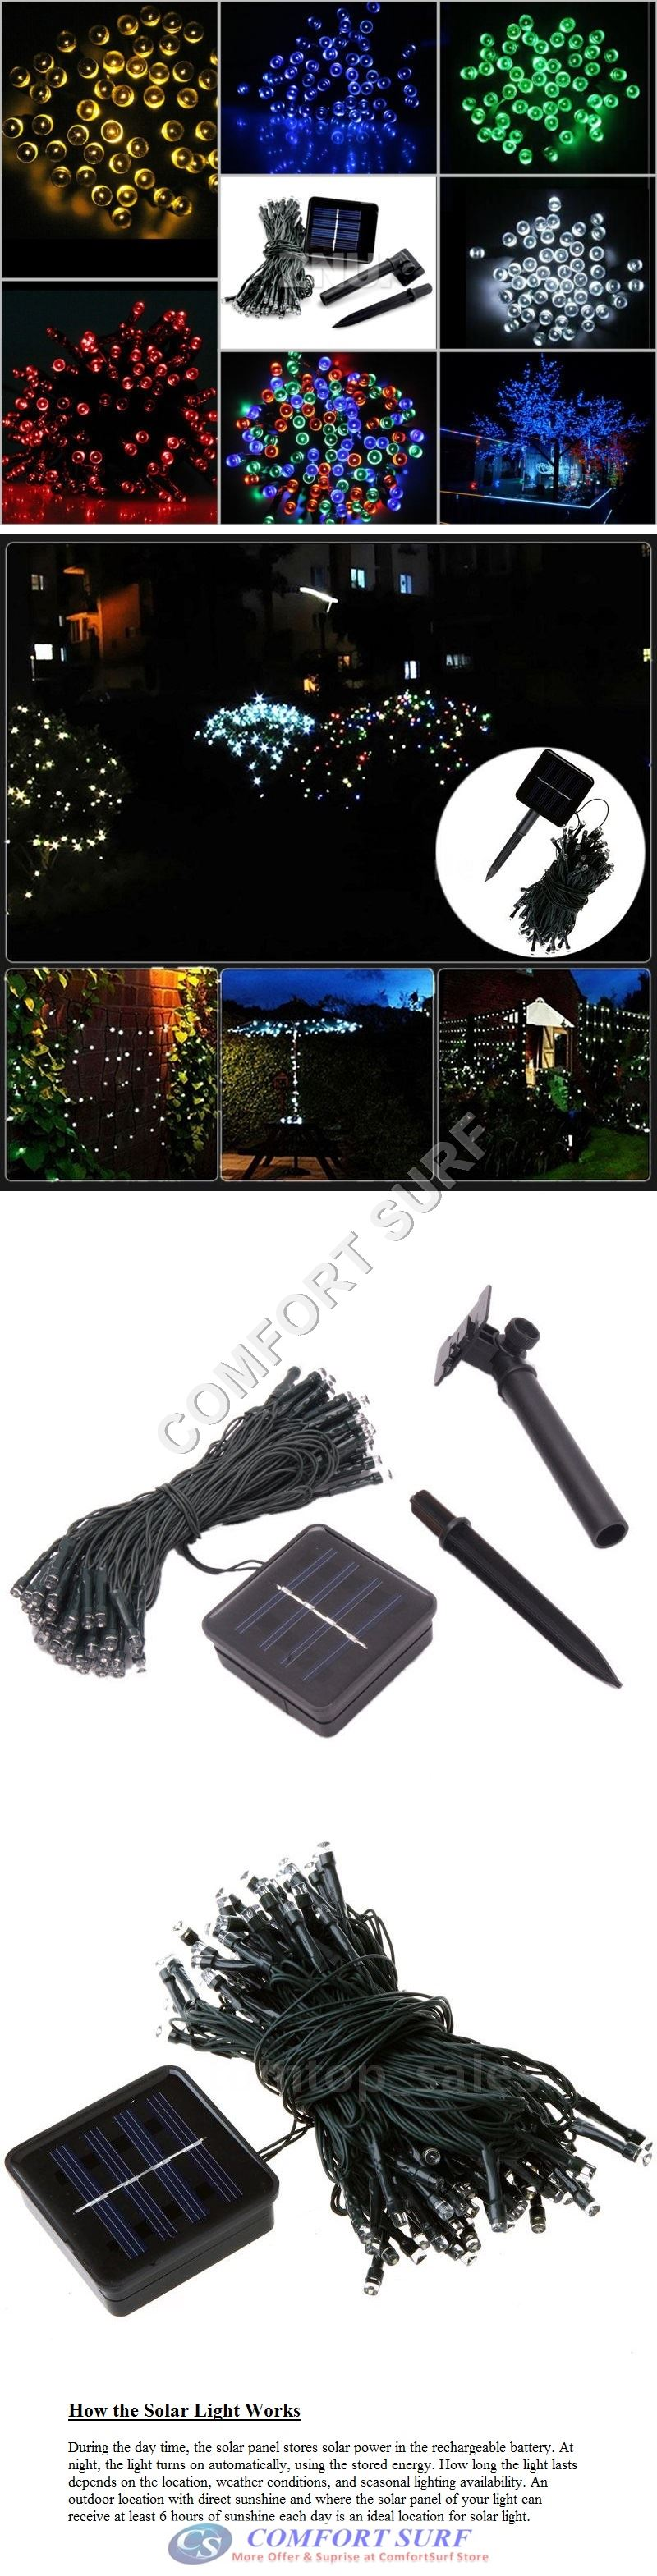 Outdoor Solar Power LED Light Path Way Wall Landscape Mount Garden Fence Decoration Lamp